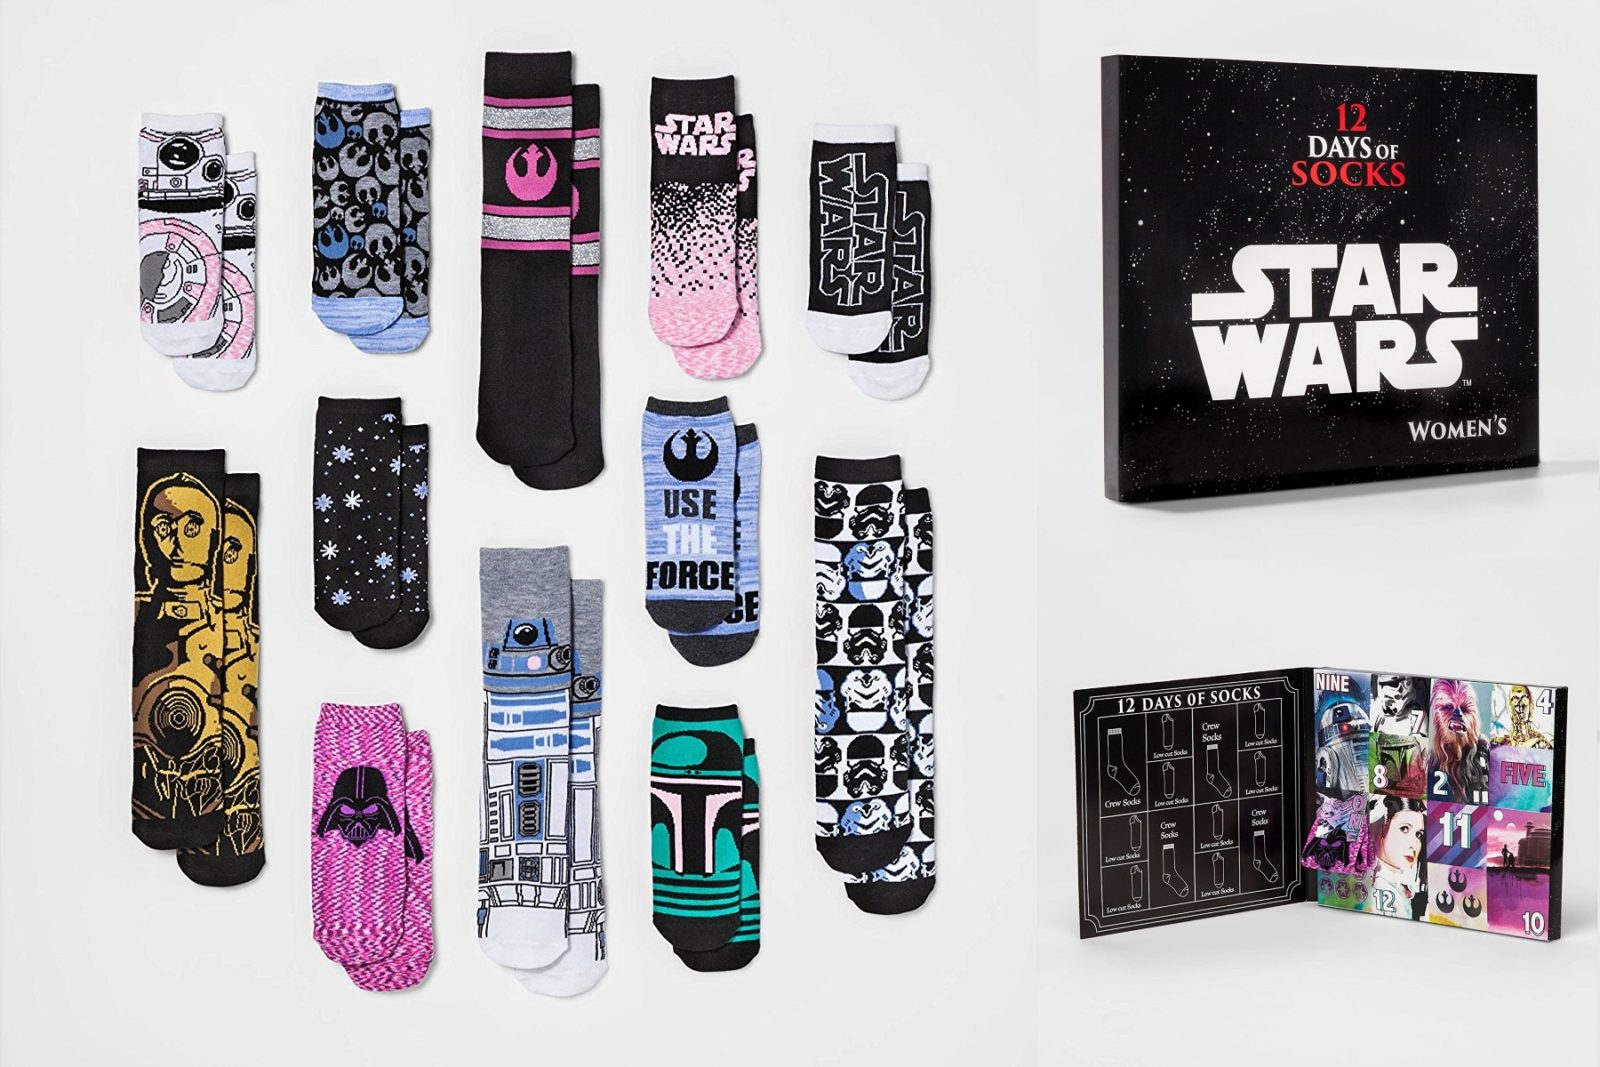 Women's Star Wars Sock Advent Calendar